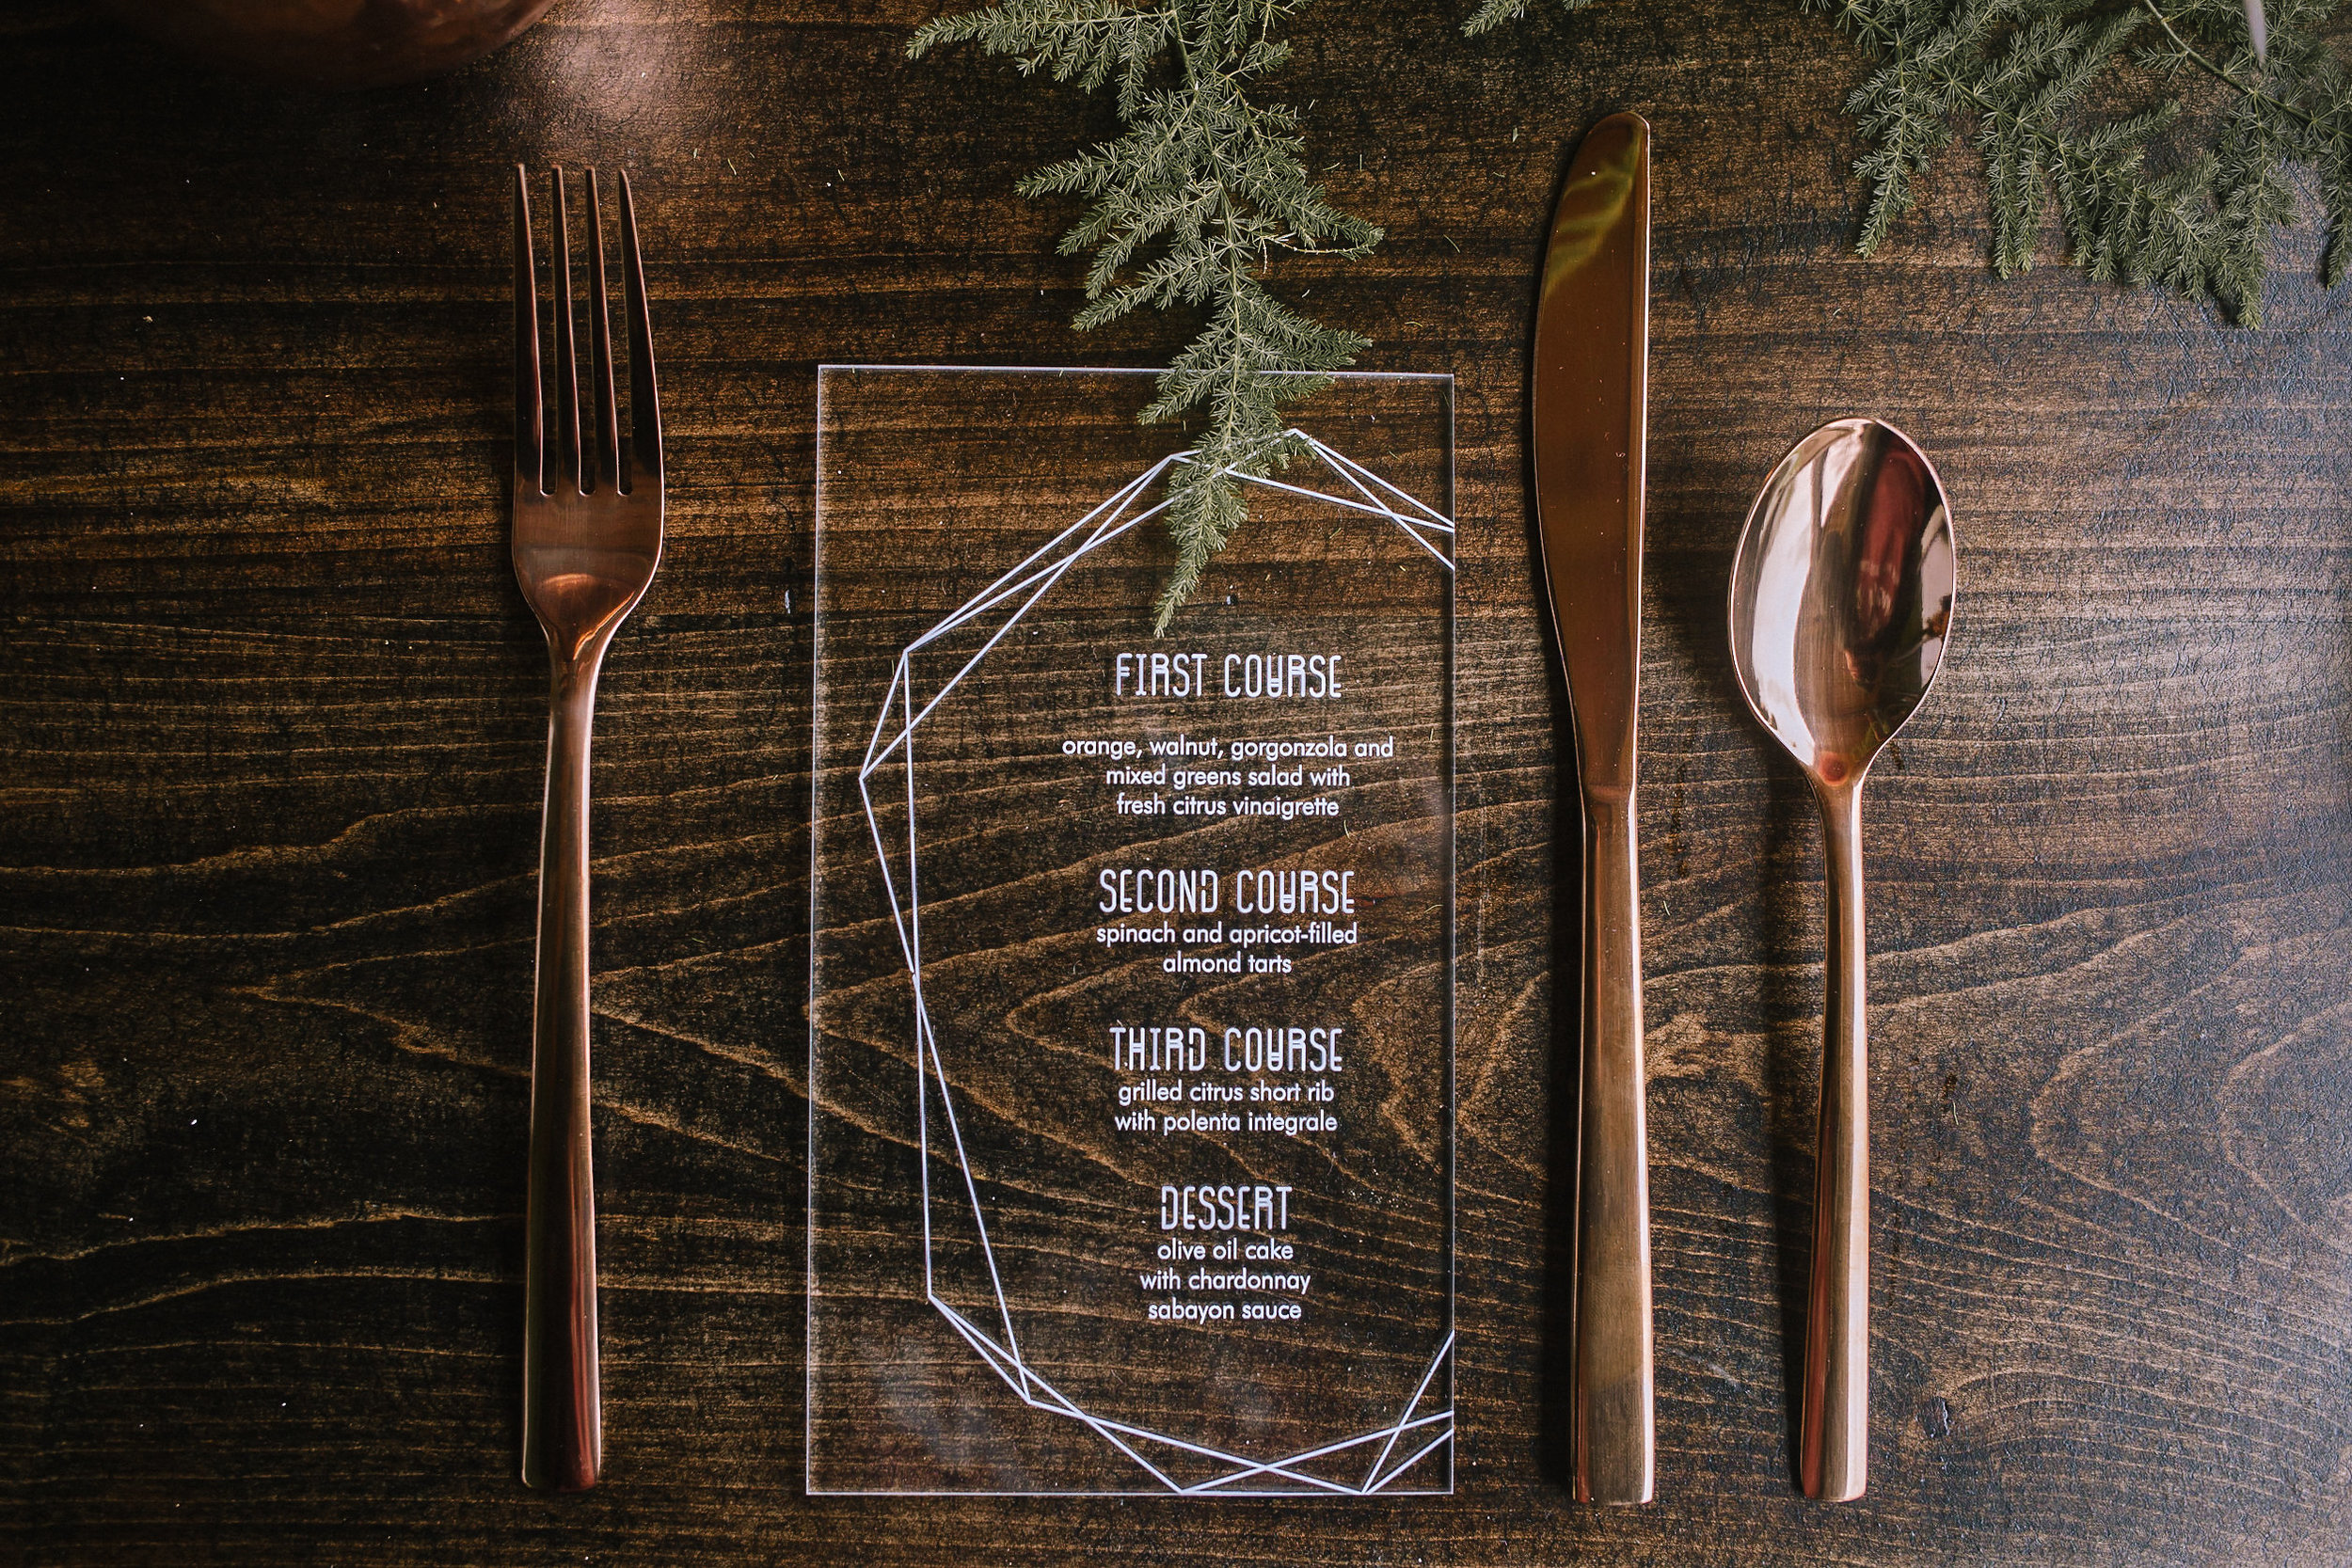 Acrylic wedding menu at wedding table for fall vintage boho styled shoot designed by exhale events. Get inspired by these gorgeous wedding details at exhale-events.com!